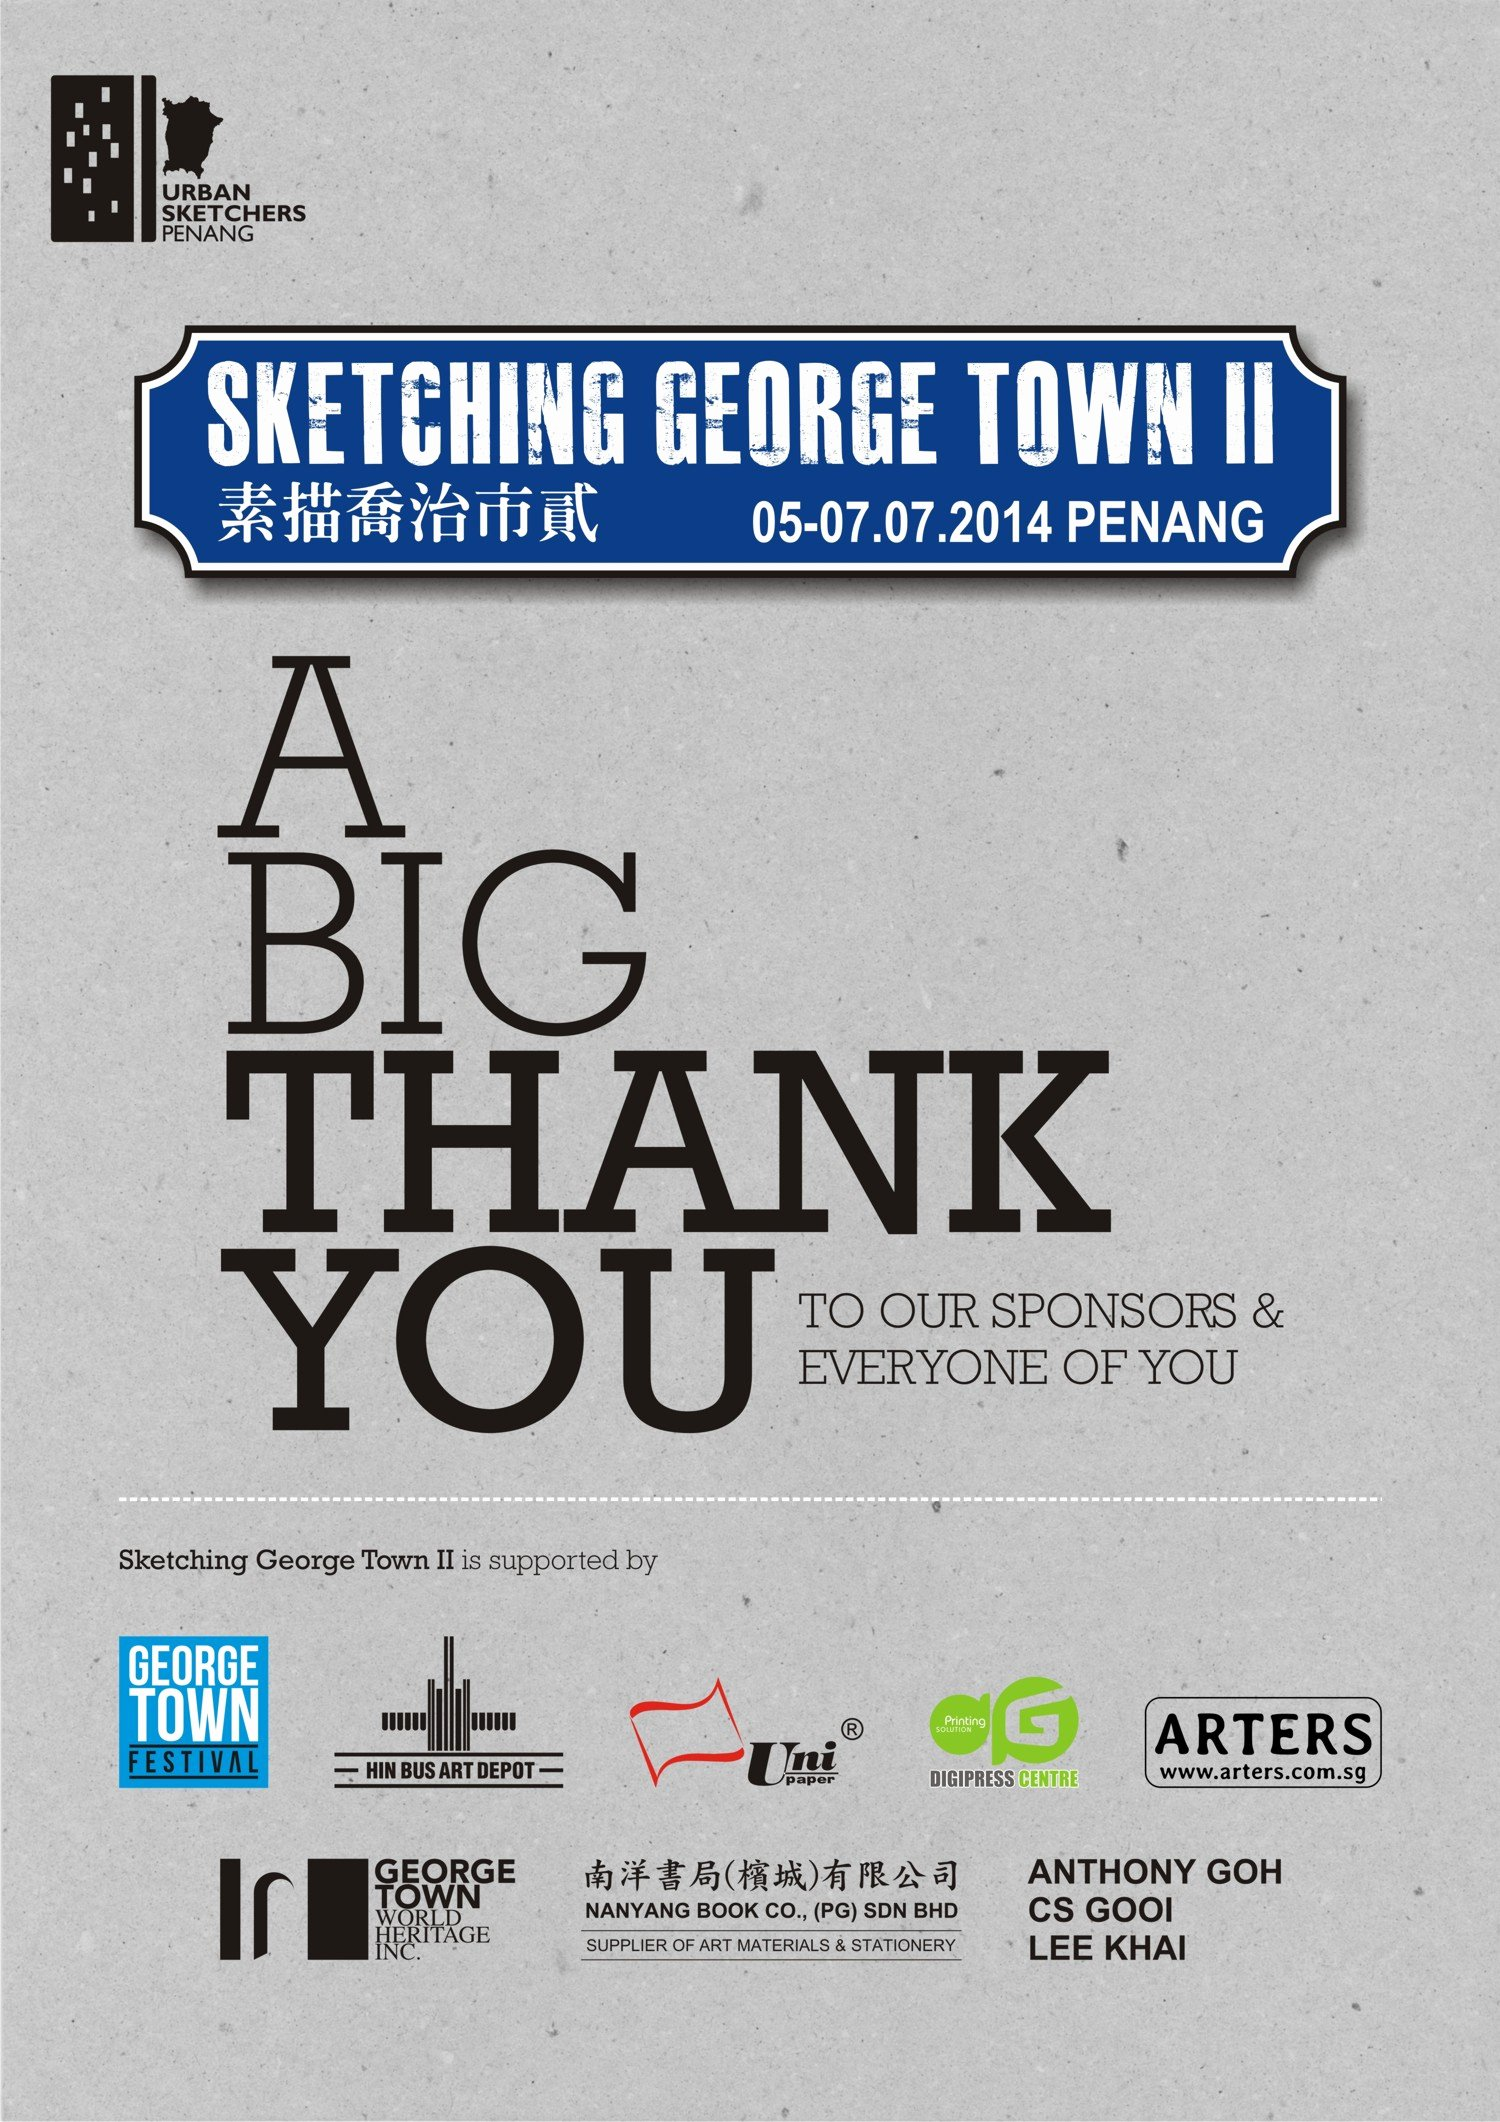 Thank You for Sponsoring event Awesome Sketching George town Ii 2014 June